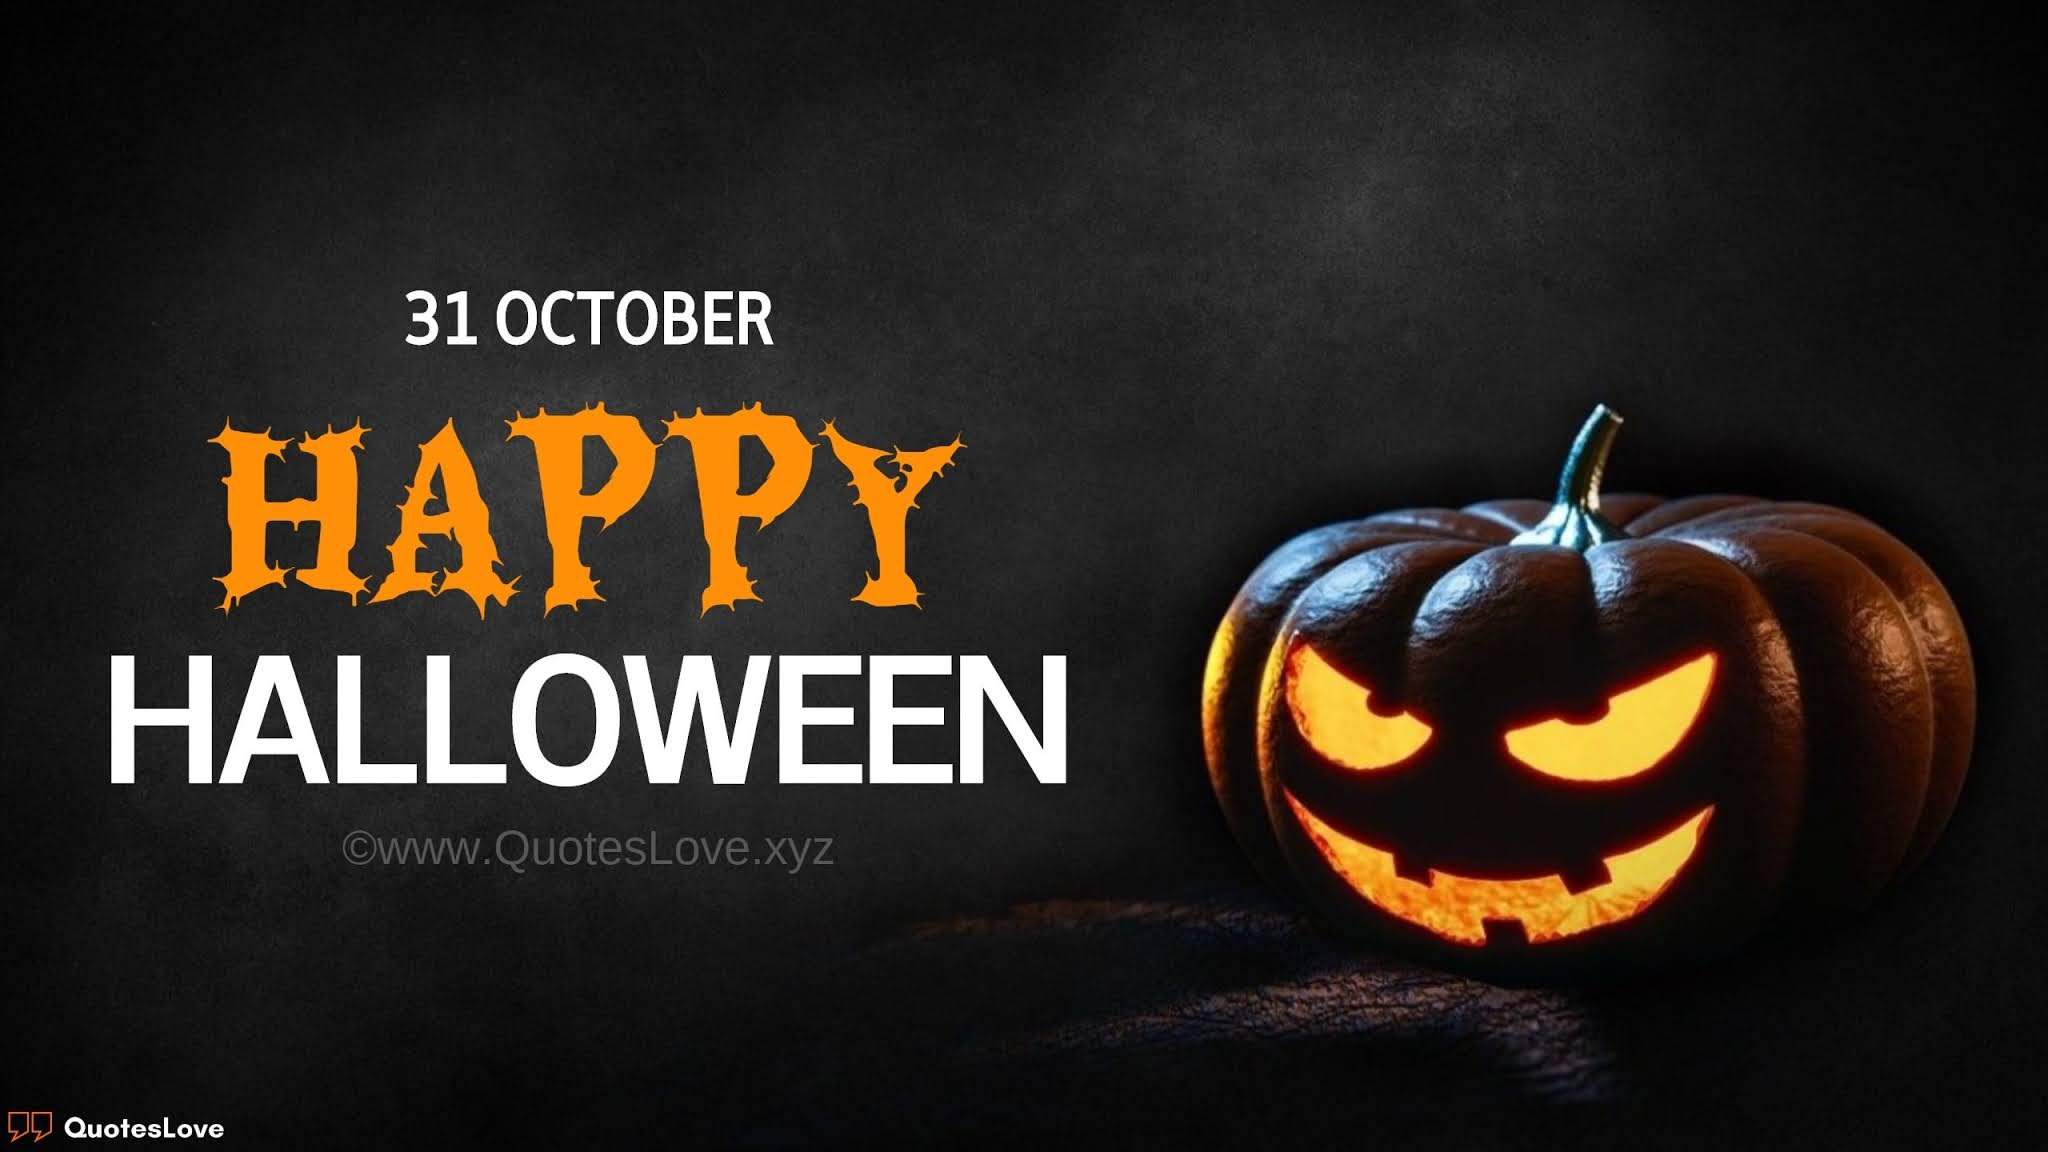 Happy Halloween Quotes, Sayings, Wishes, Greetings, Messages, Images, Pictures, Photos, Poster